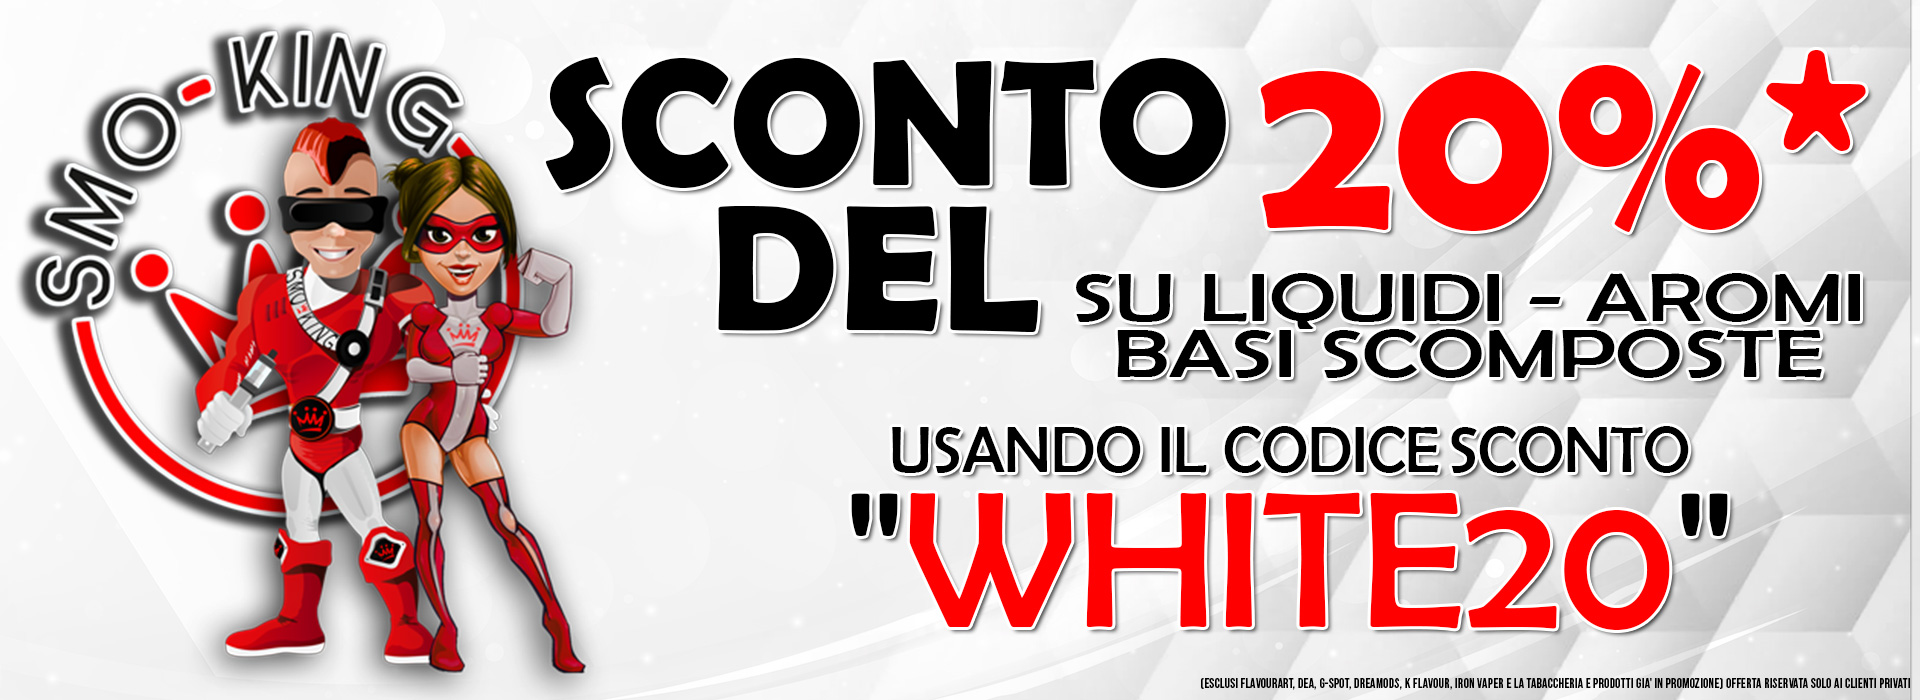 Sconto Weekend